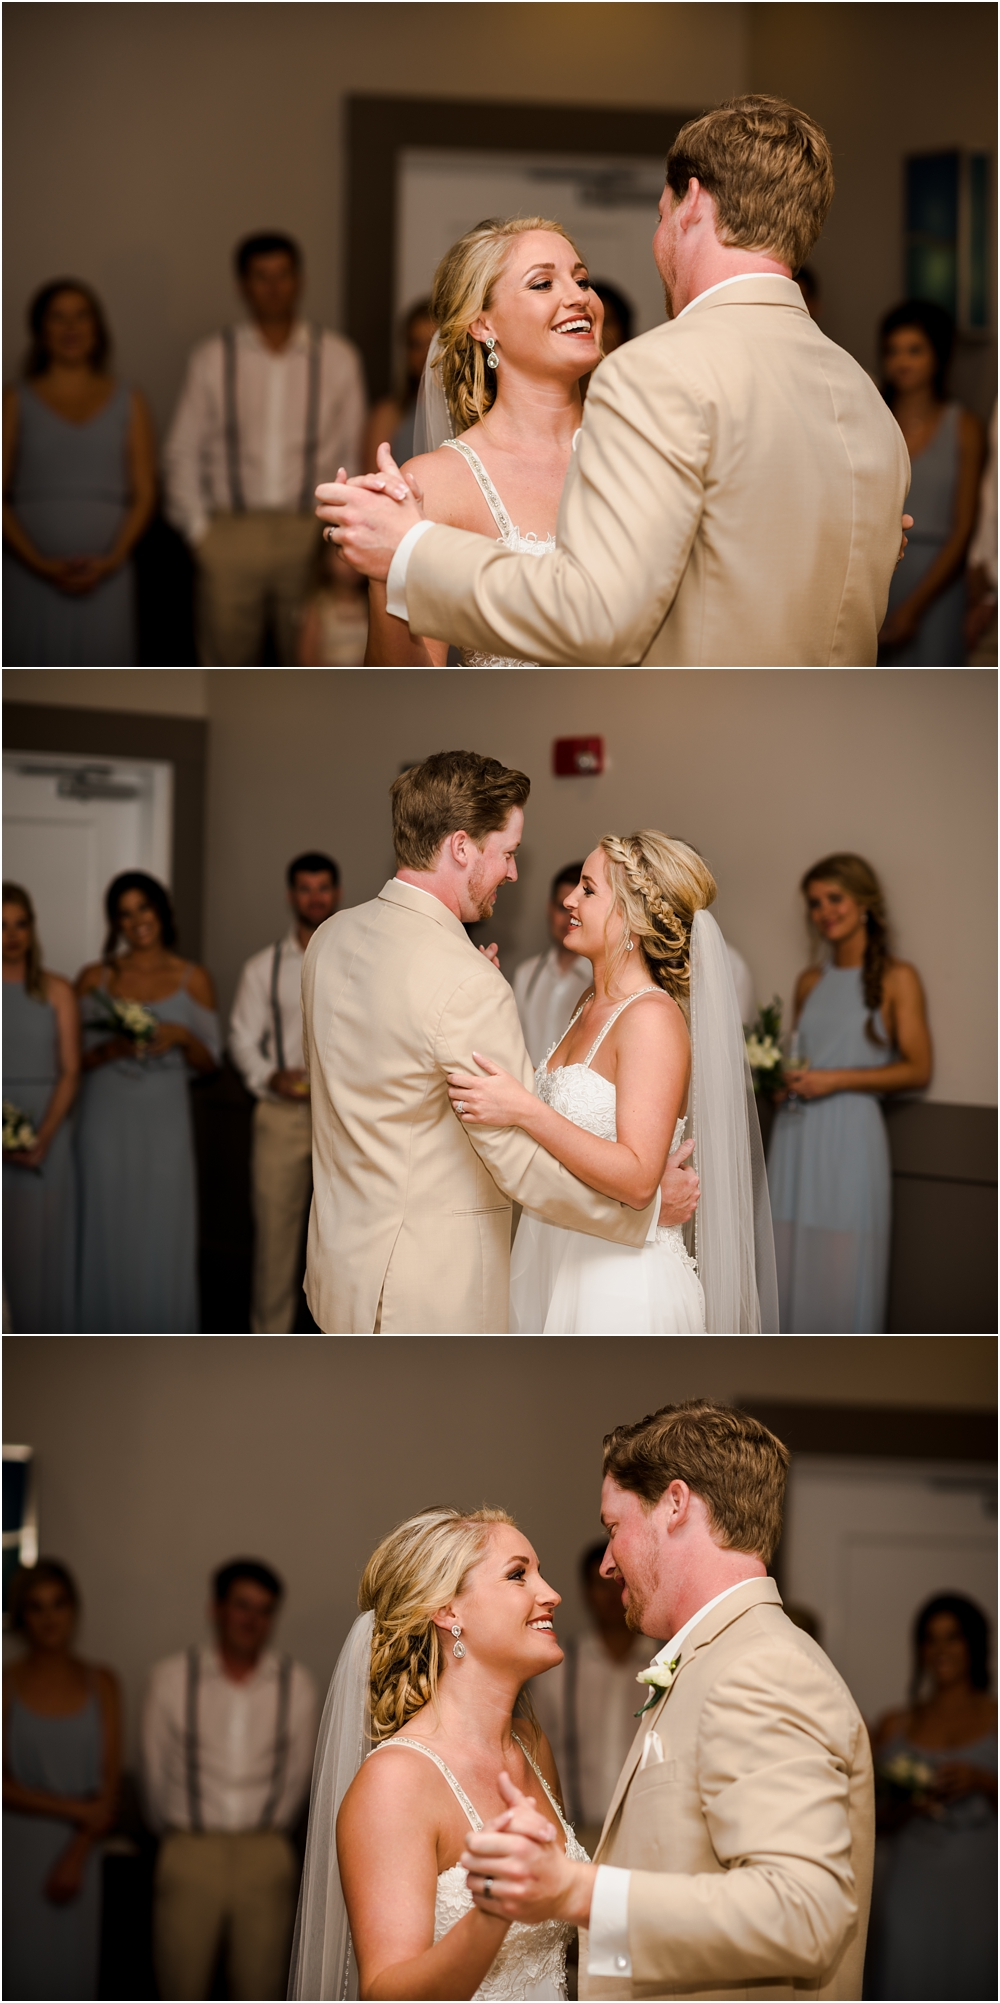 dillard-florida-wedding-photographer-panama-city-beach-dothan-tallahassee-kiersten-grant-photography-135.jpg